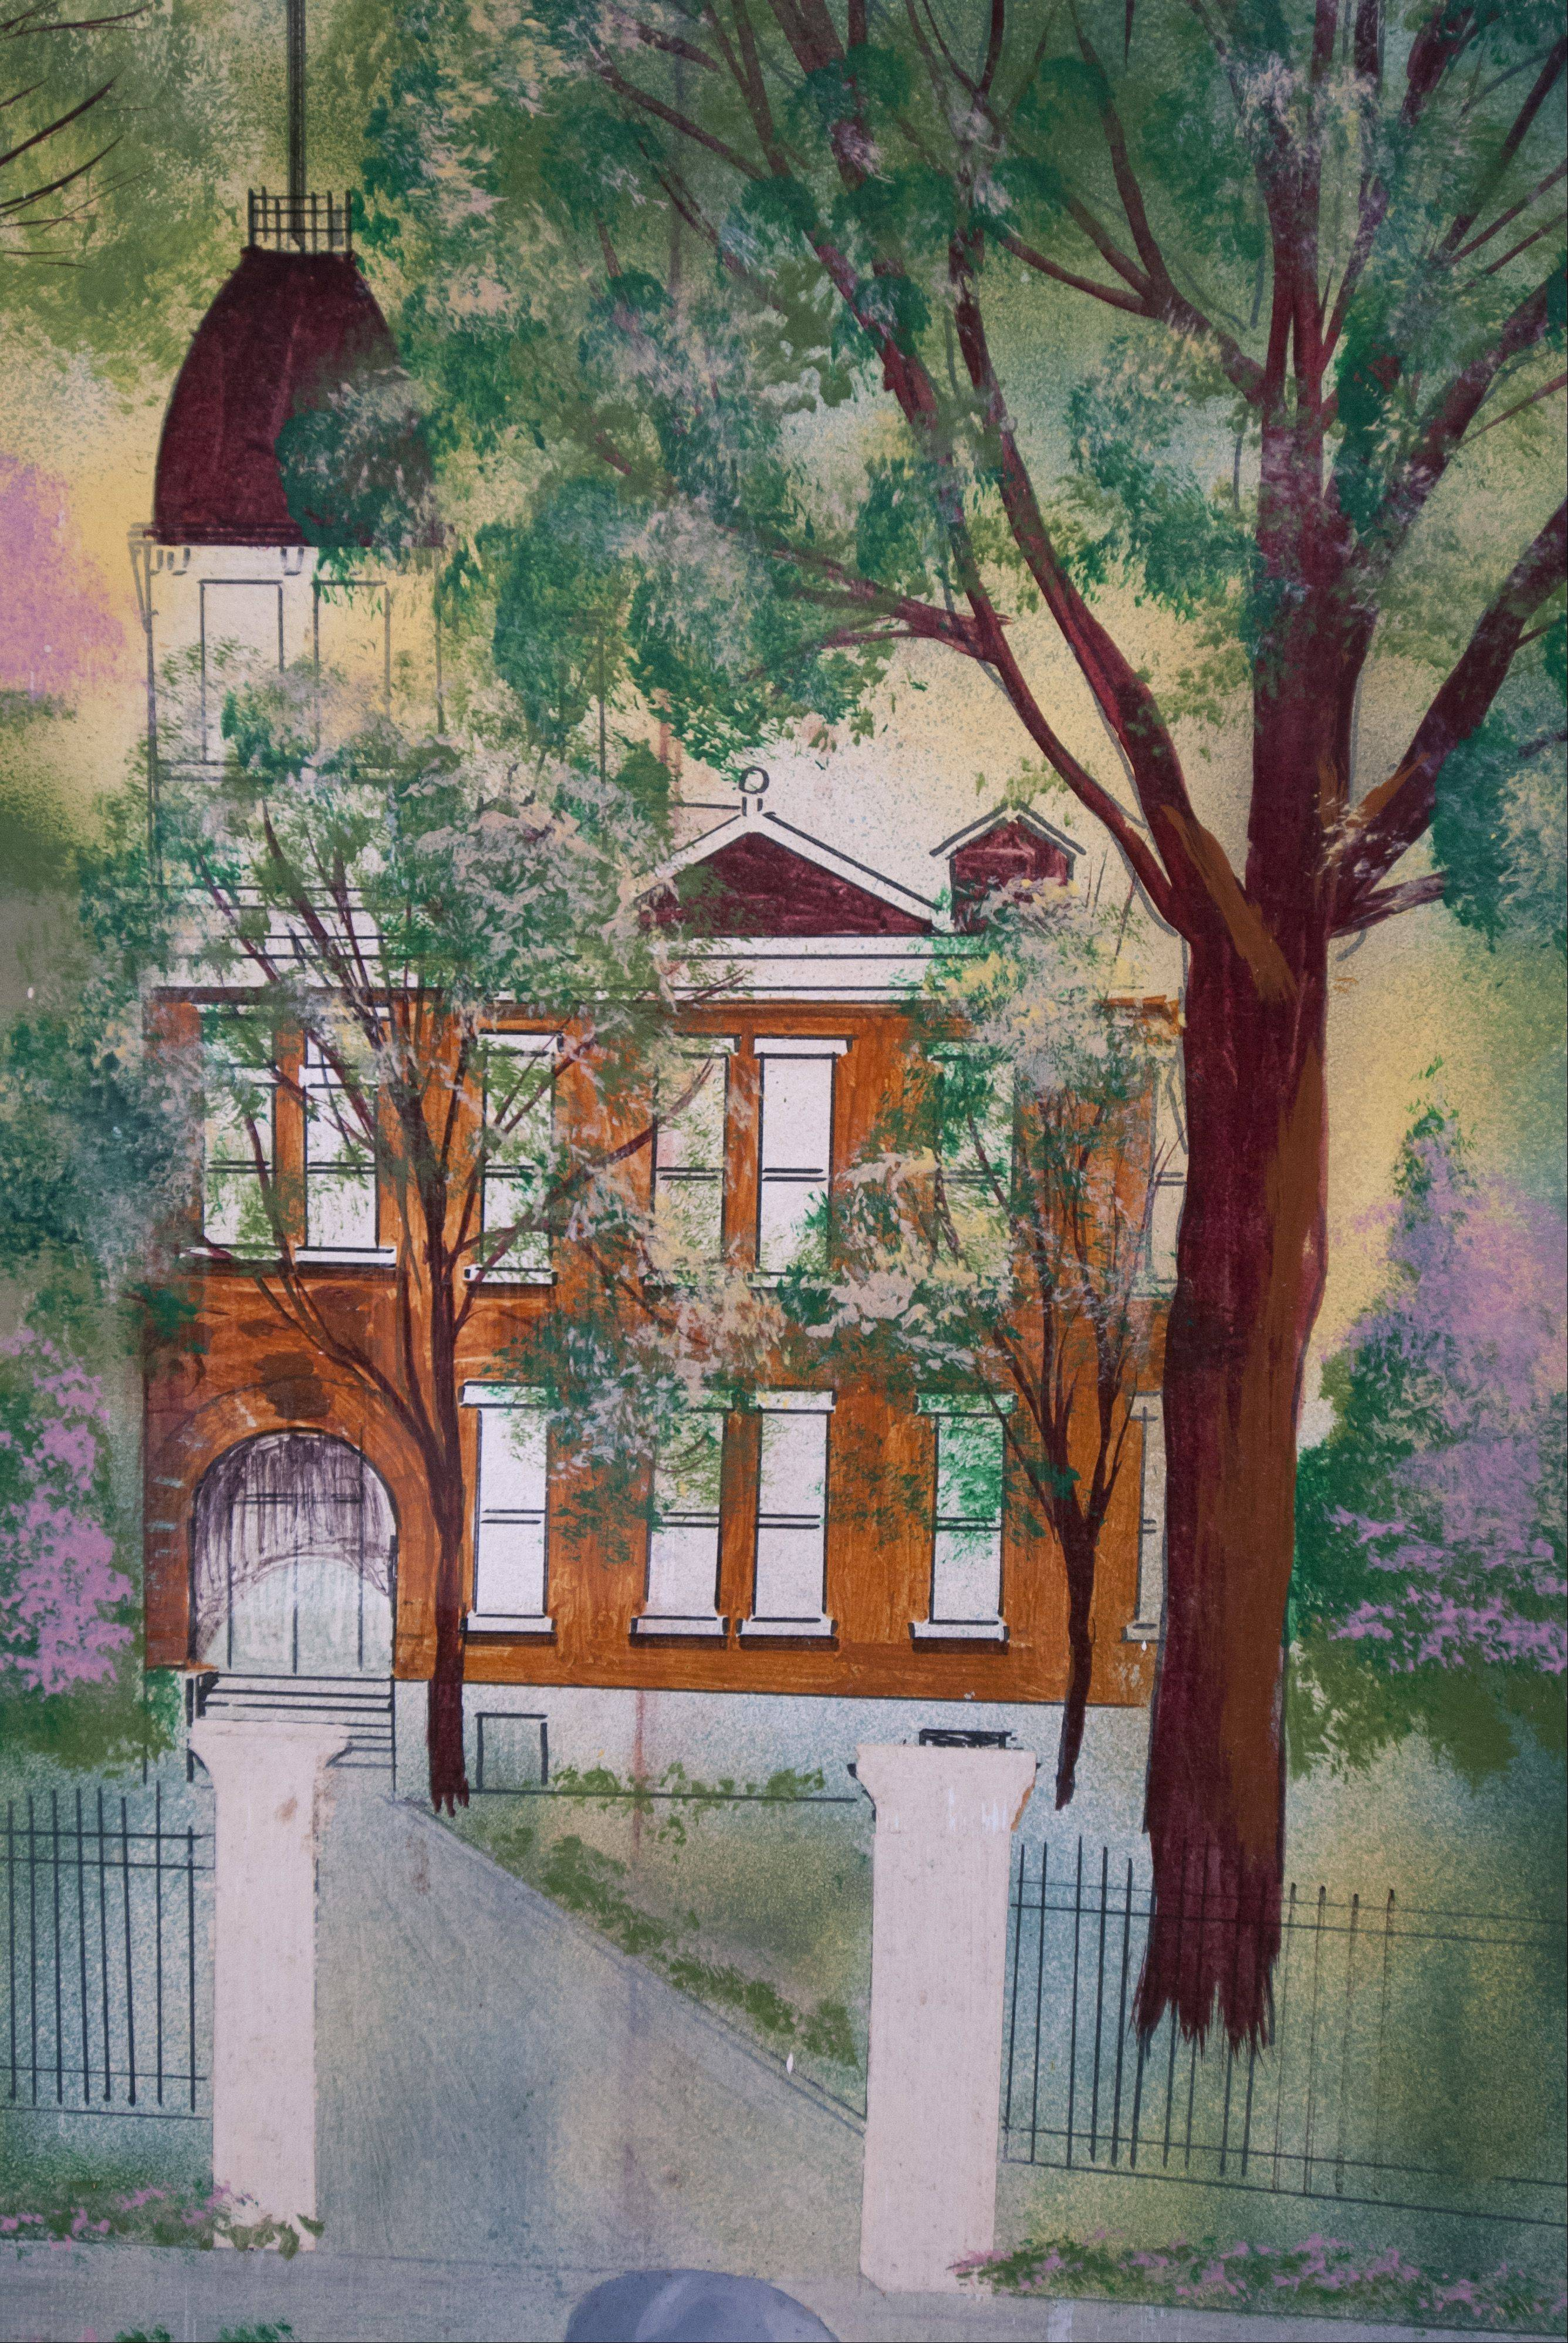 The former Lincoln school is depicted on an incomplete painting Lombard Trustee Laura Fitzpatrick is working to finish. The painting hung above the front desk at village hall and was taken down while the desk is undergoing renovations.